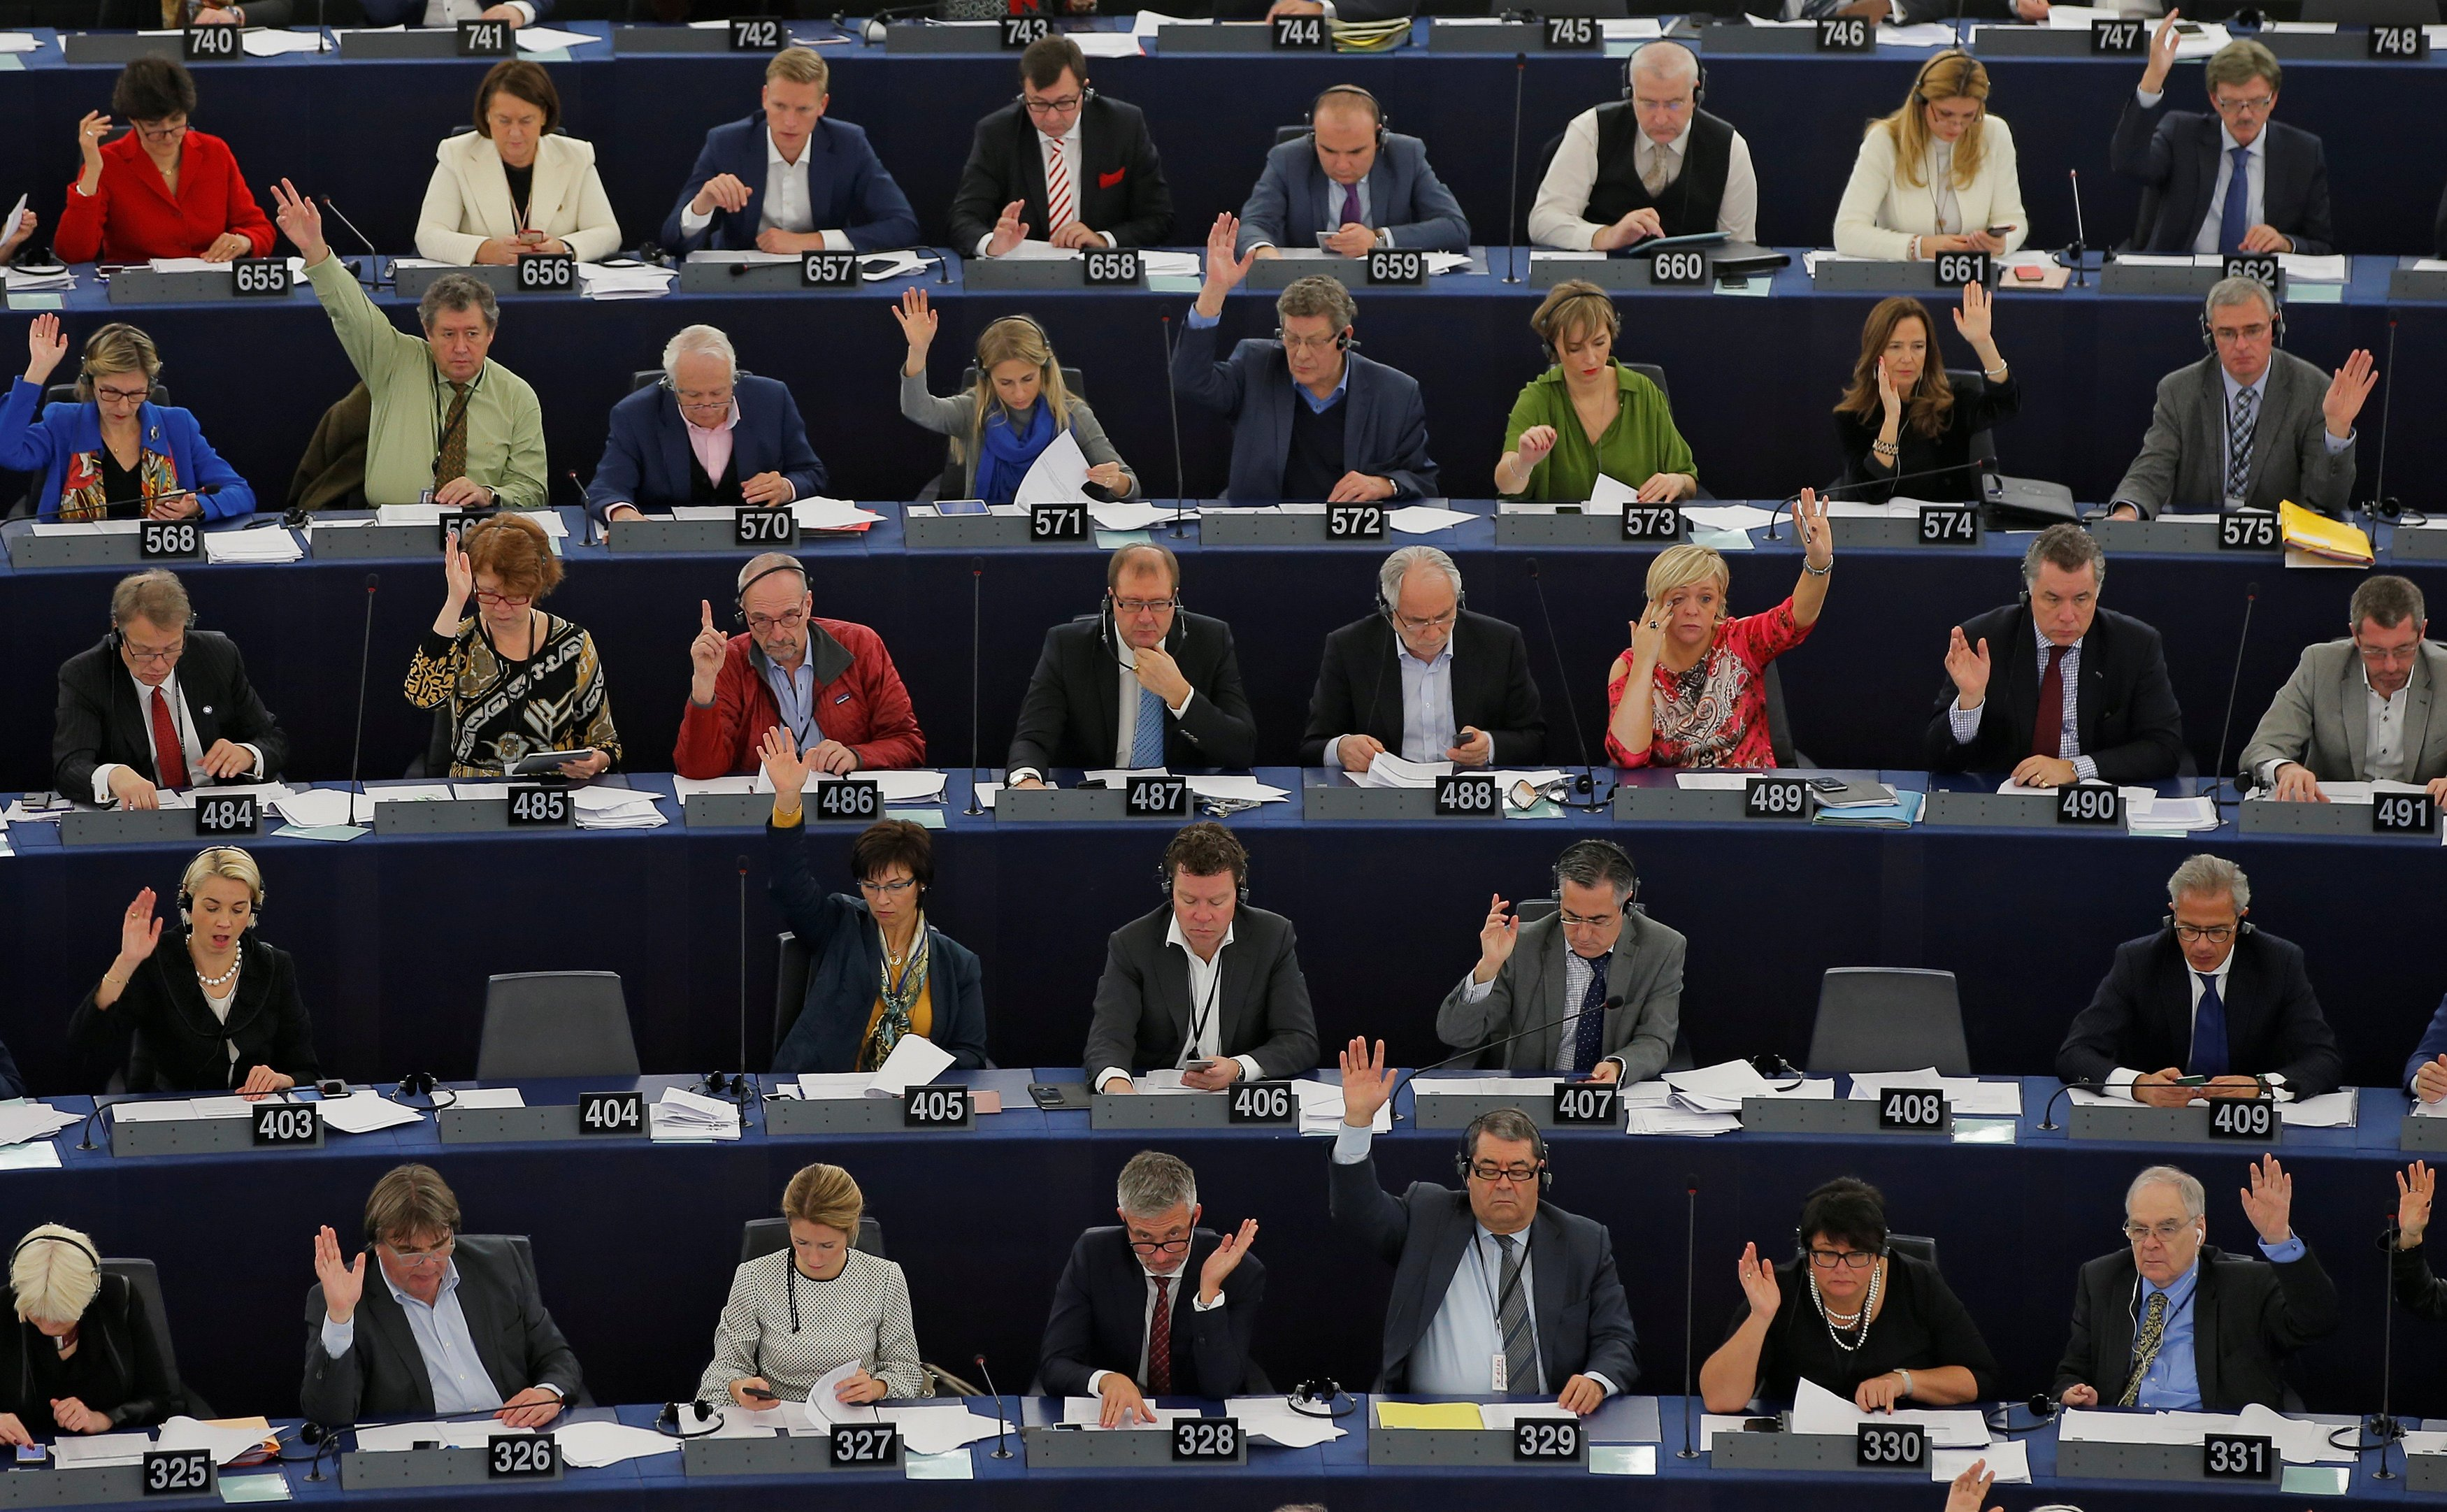 Euro parliament in row over Arctic environment rules